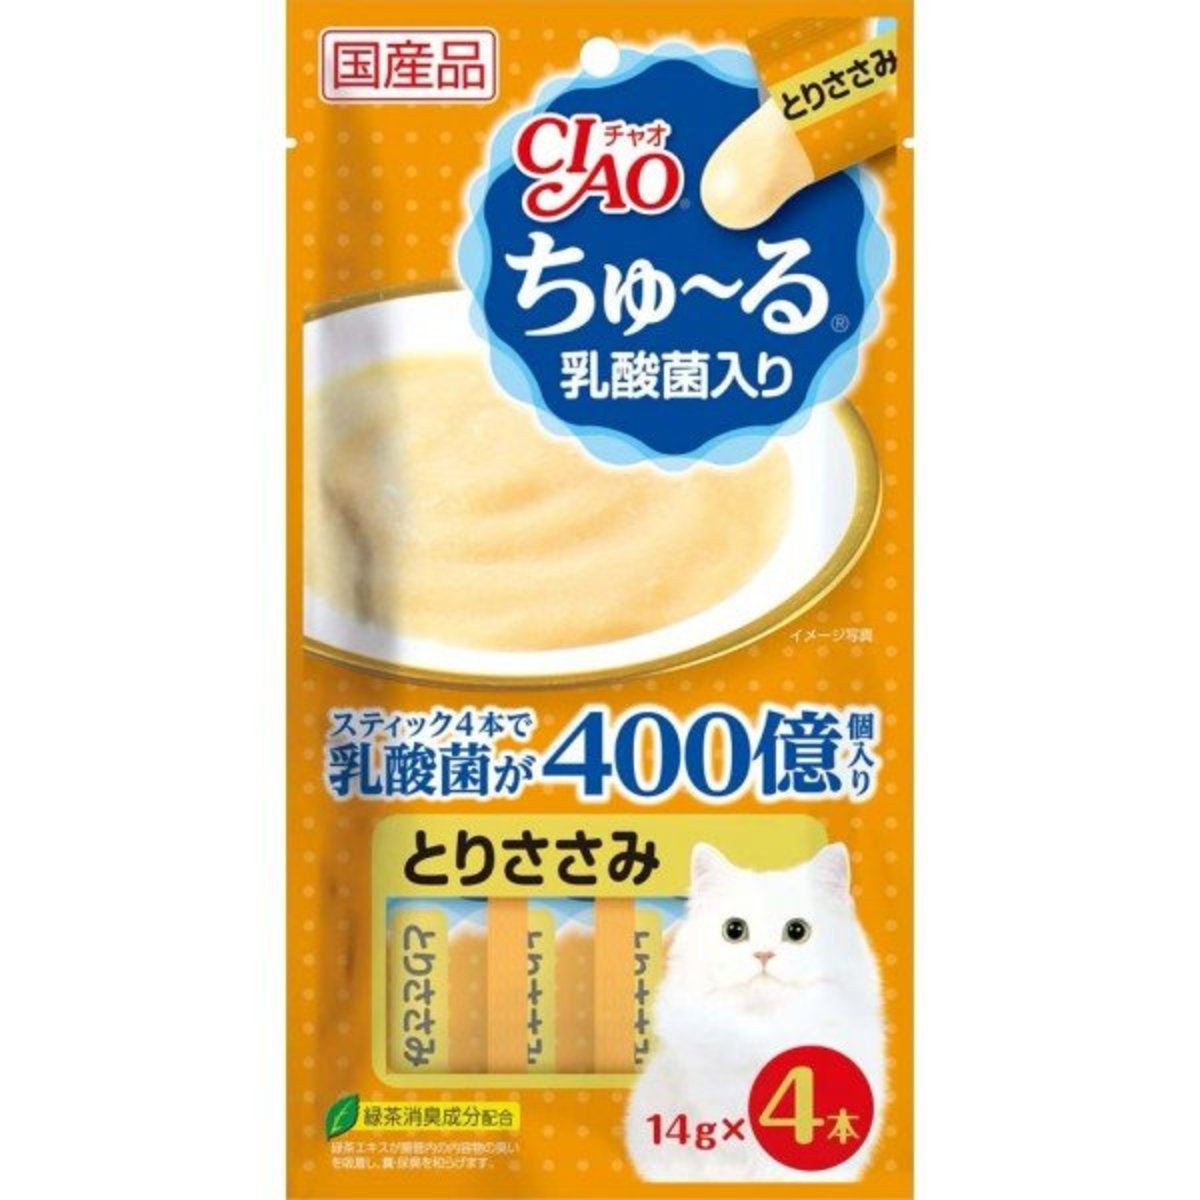 CIAO Chicken Puree with Probiotic (14g x 4) #SC-233